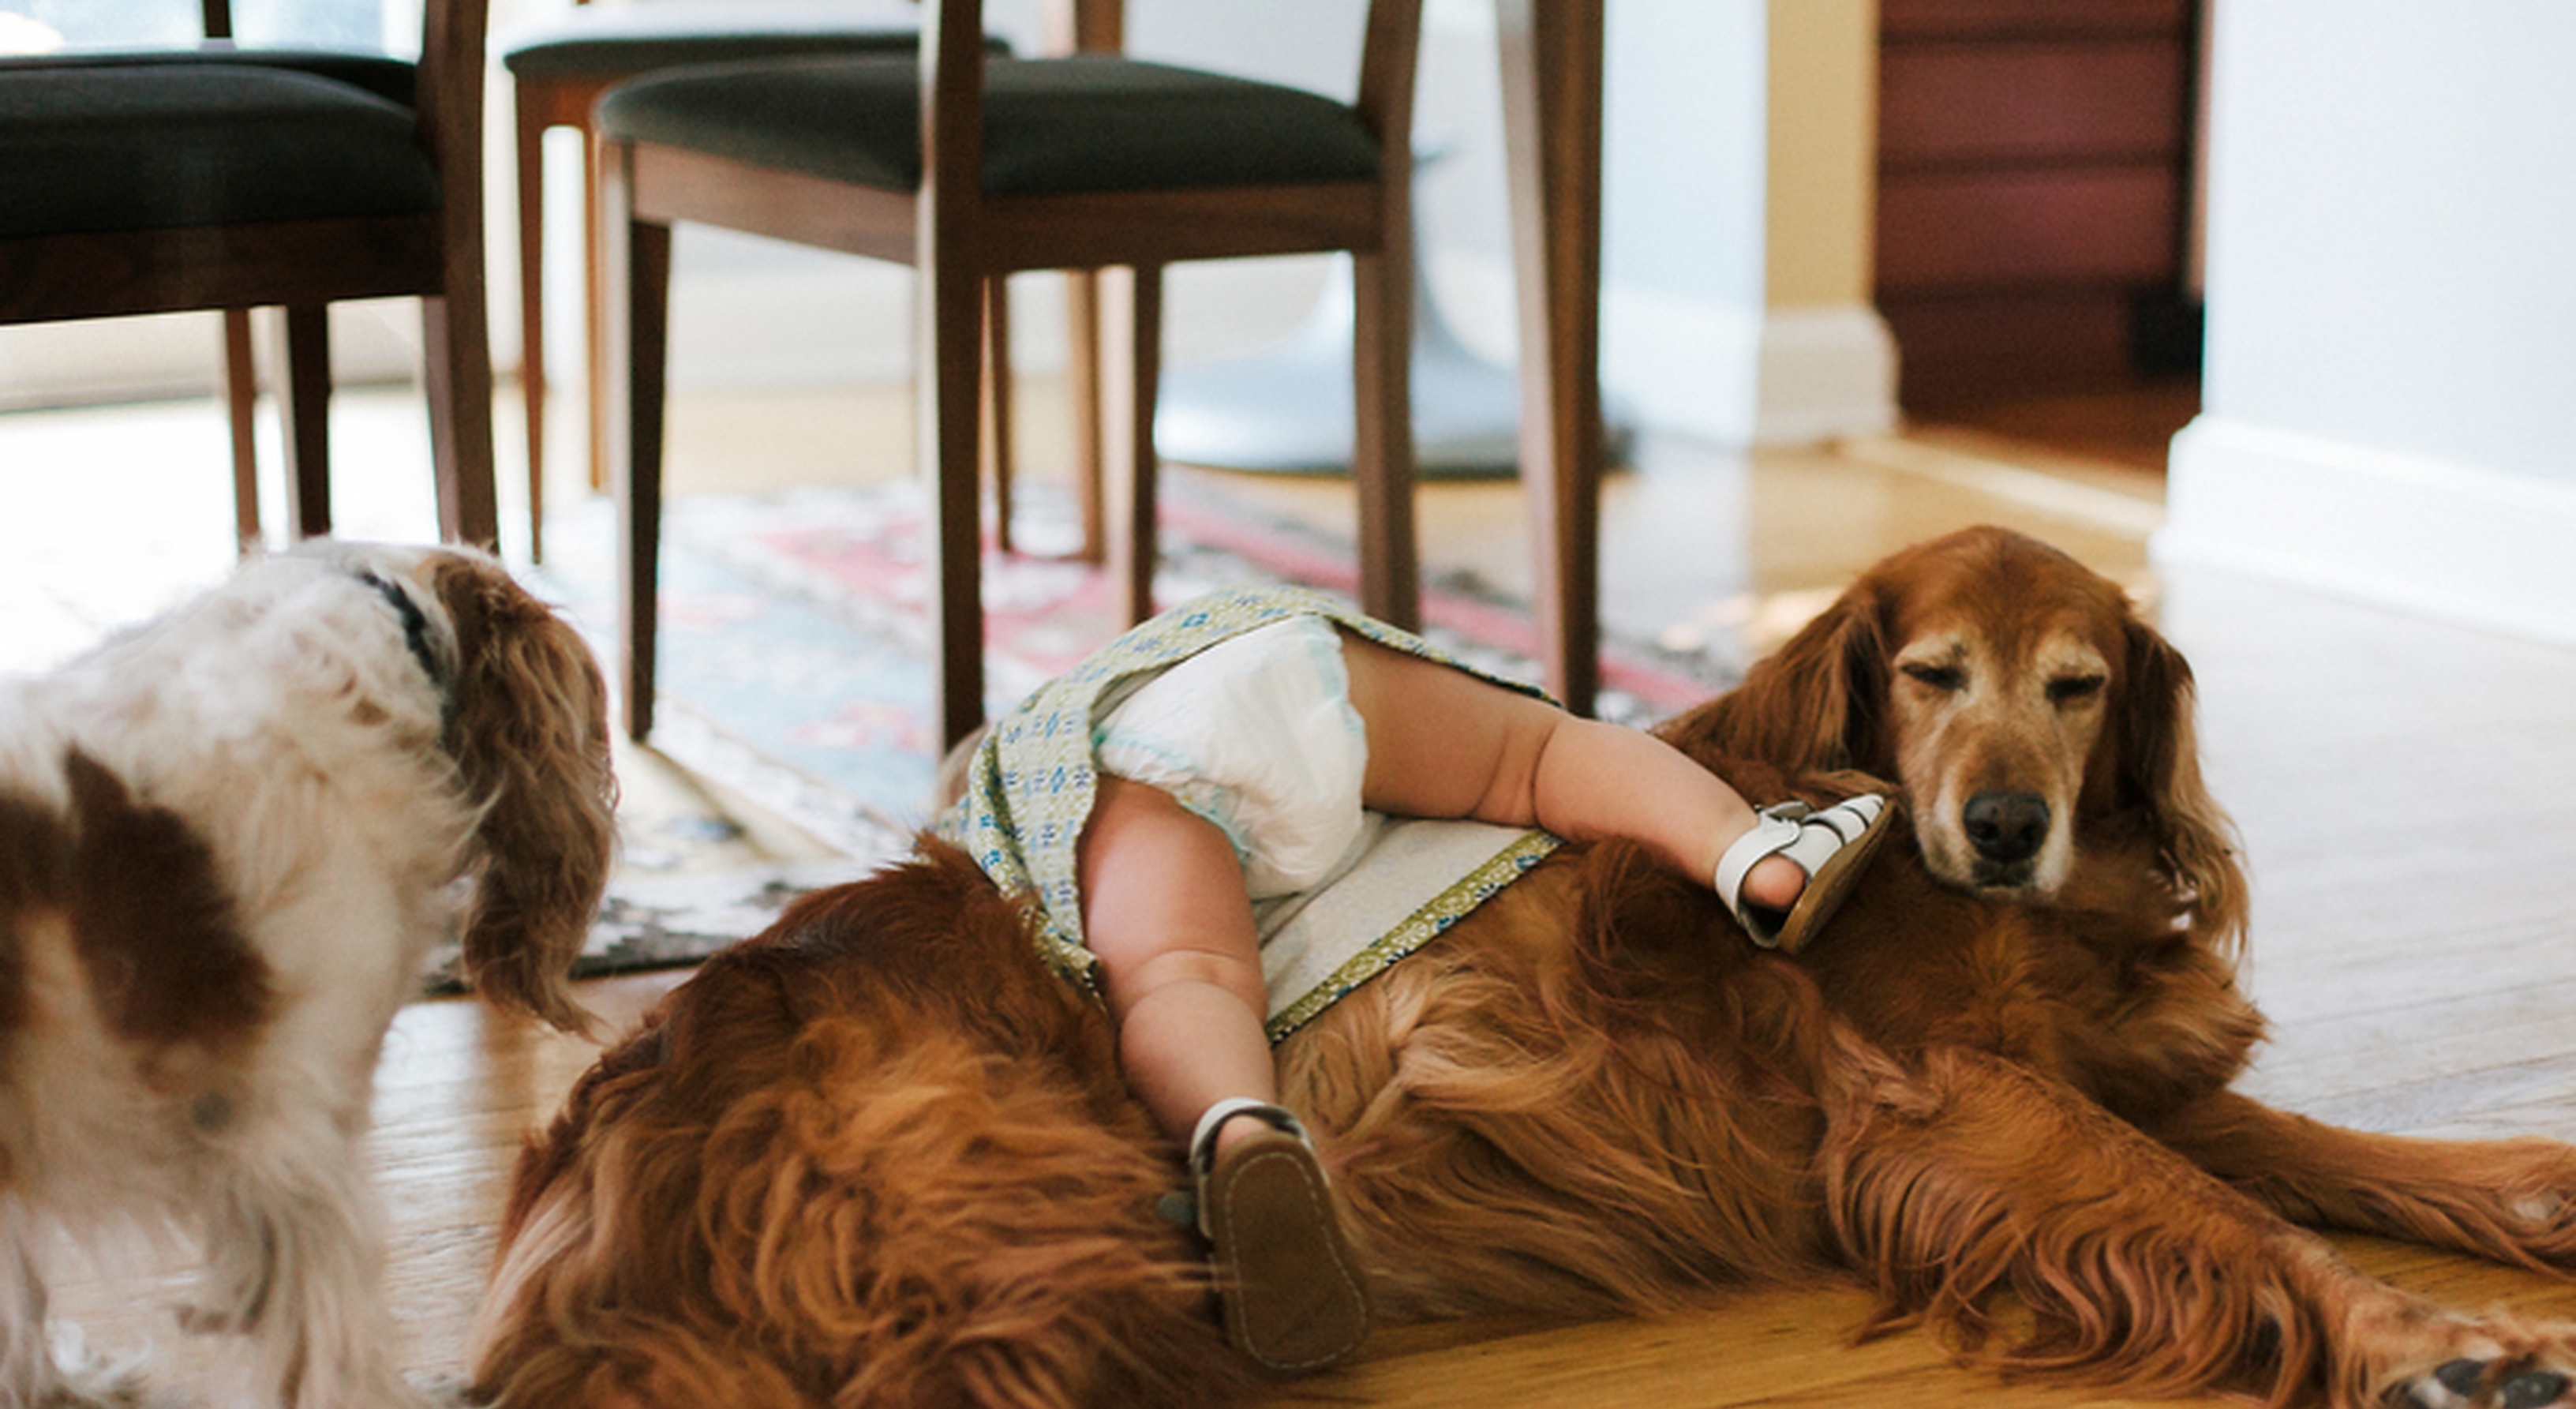 Toddler in nappy falling over dog